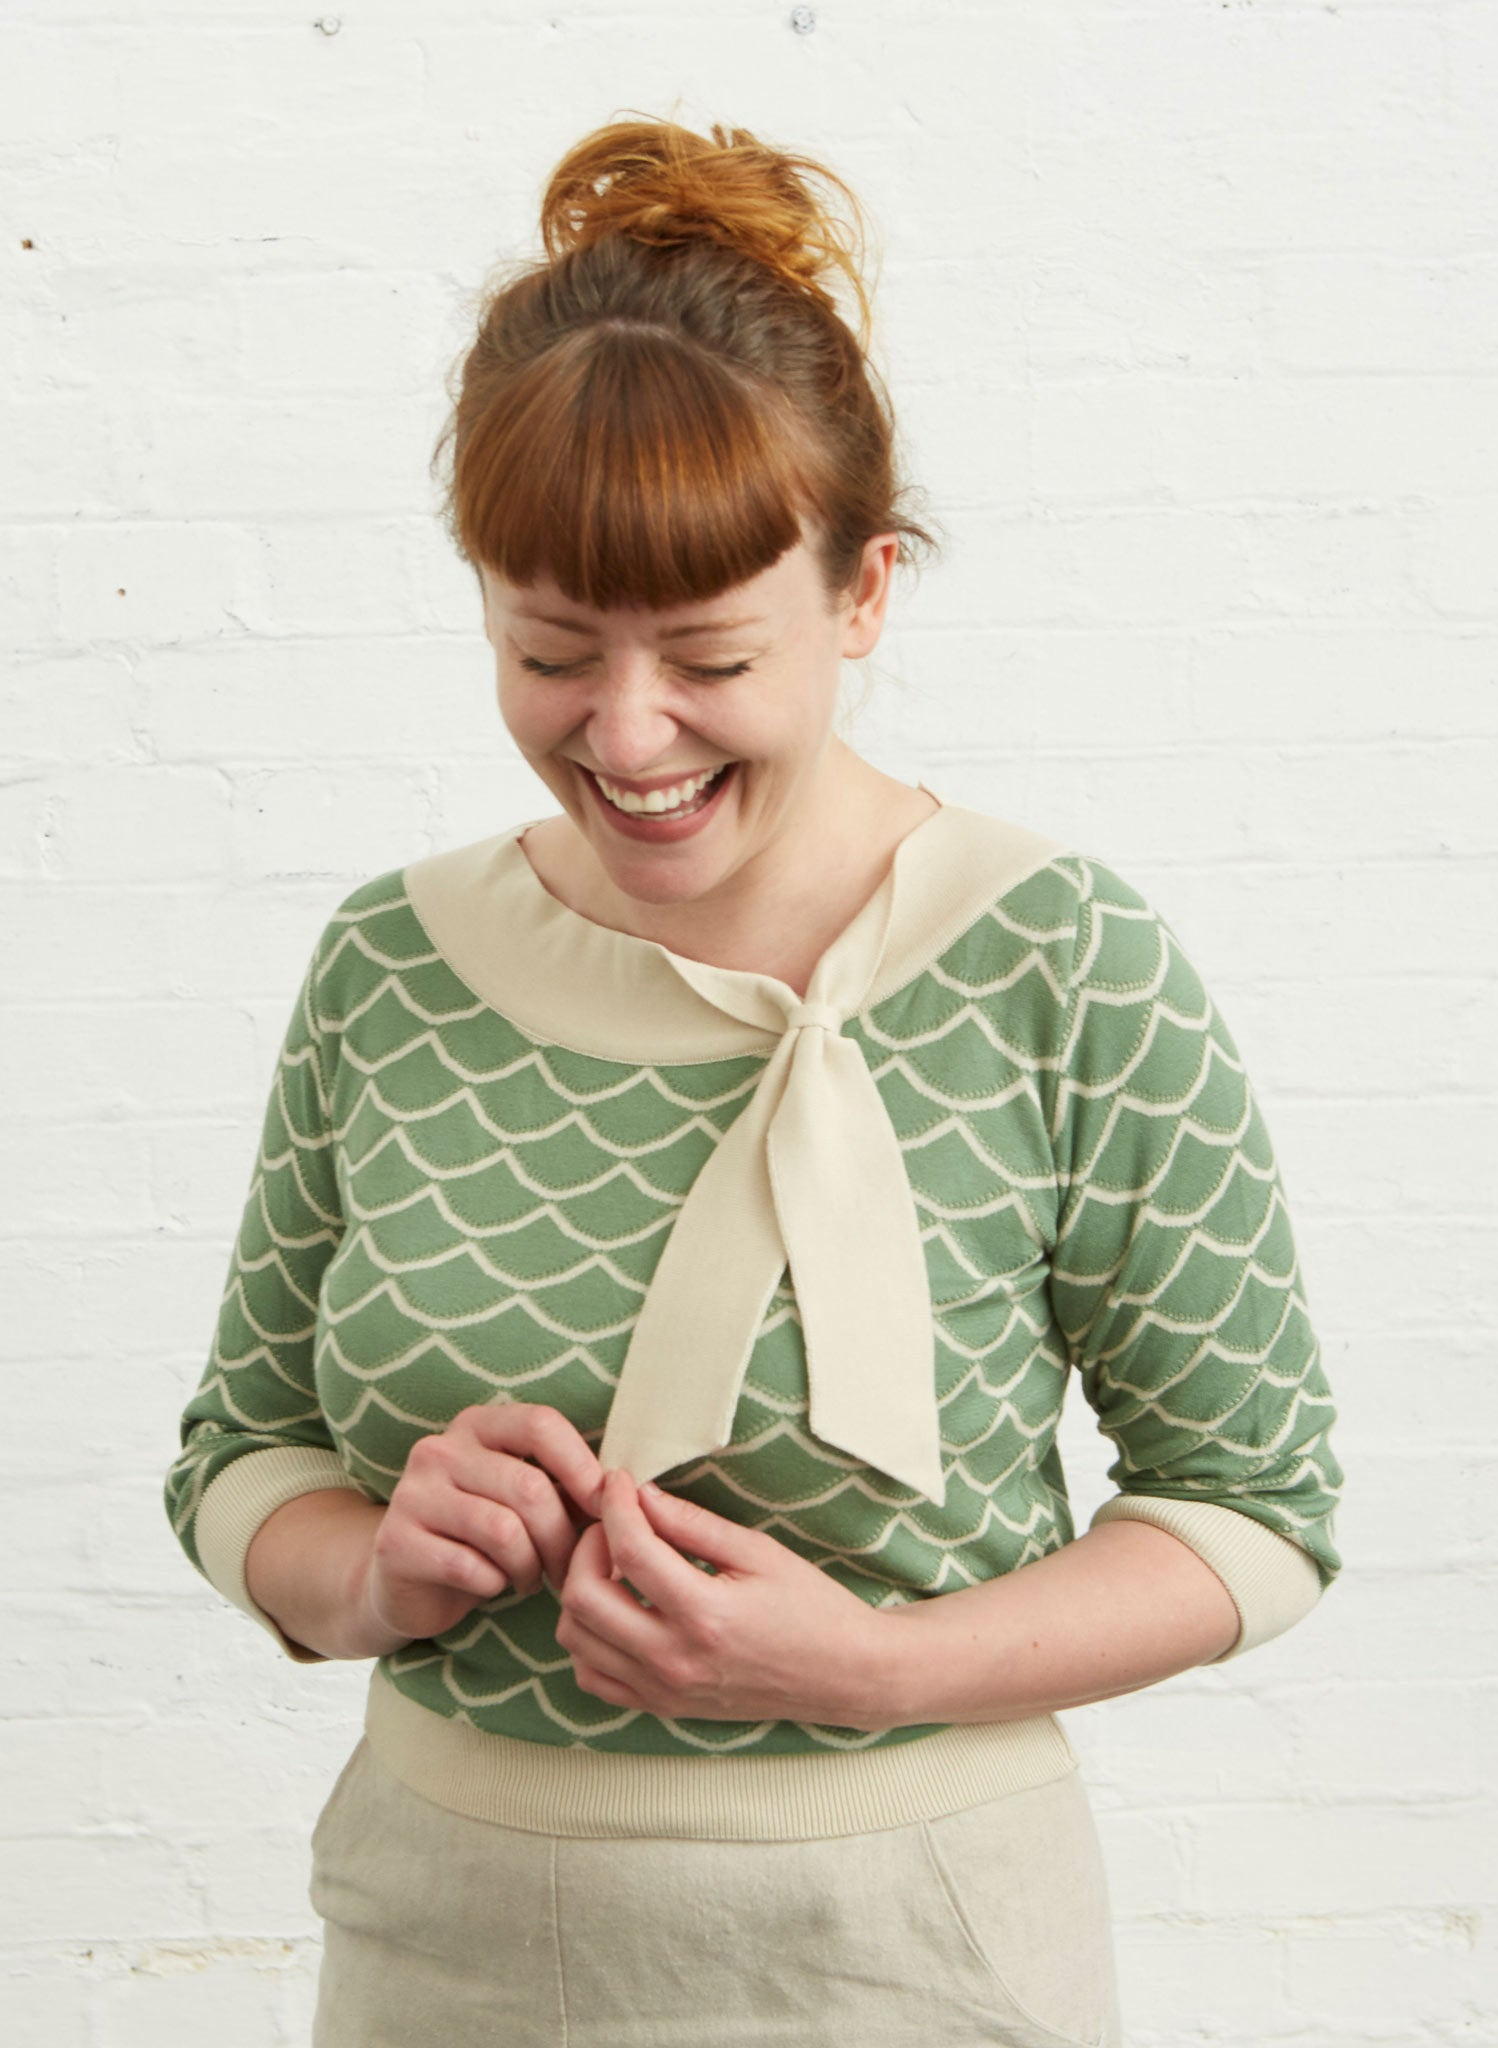 Palava Amelie Green Shell Knitted Top - Organic Cotton